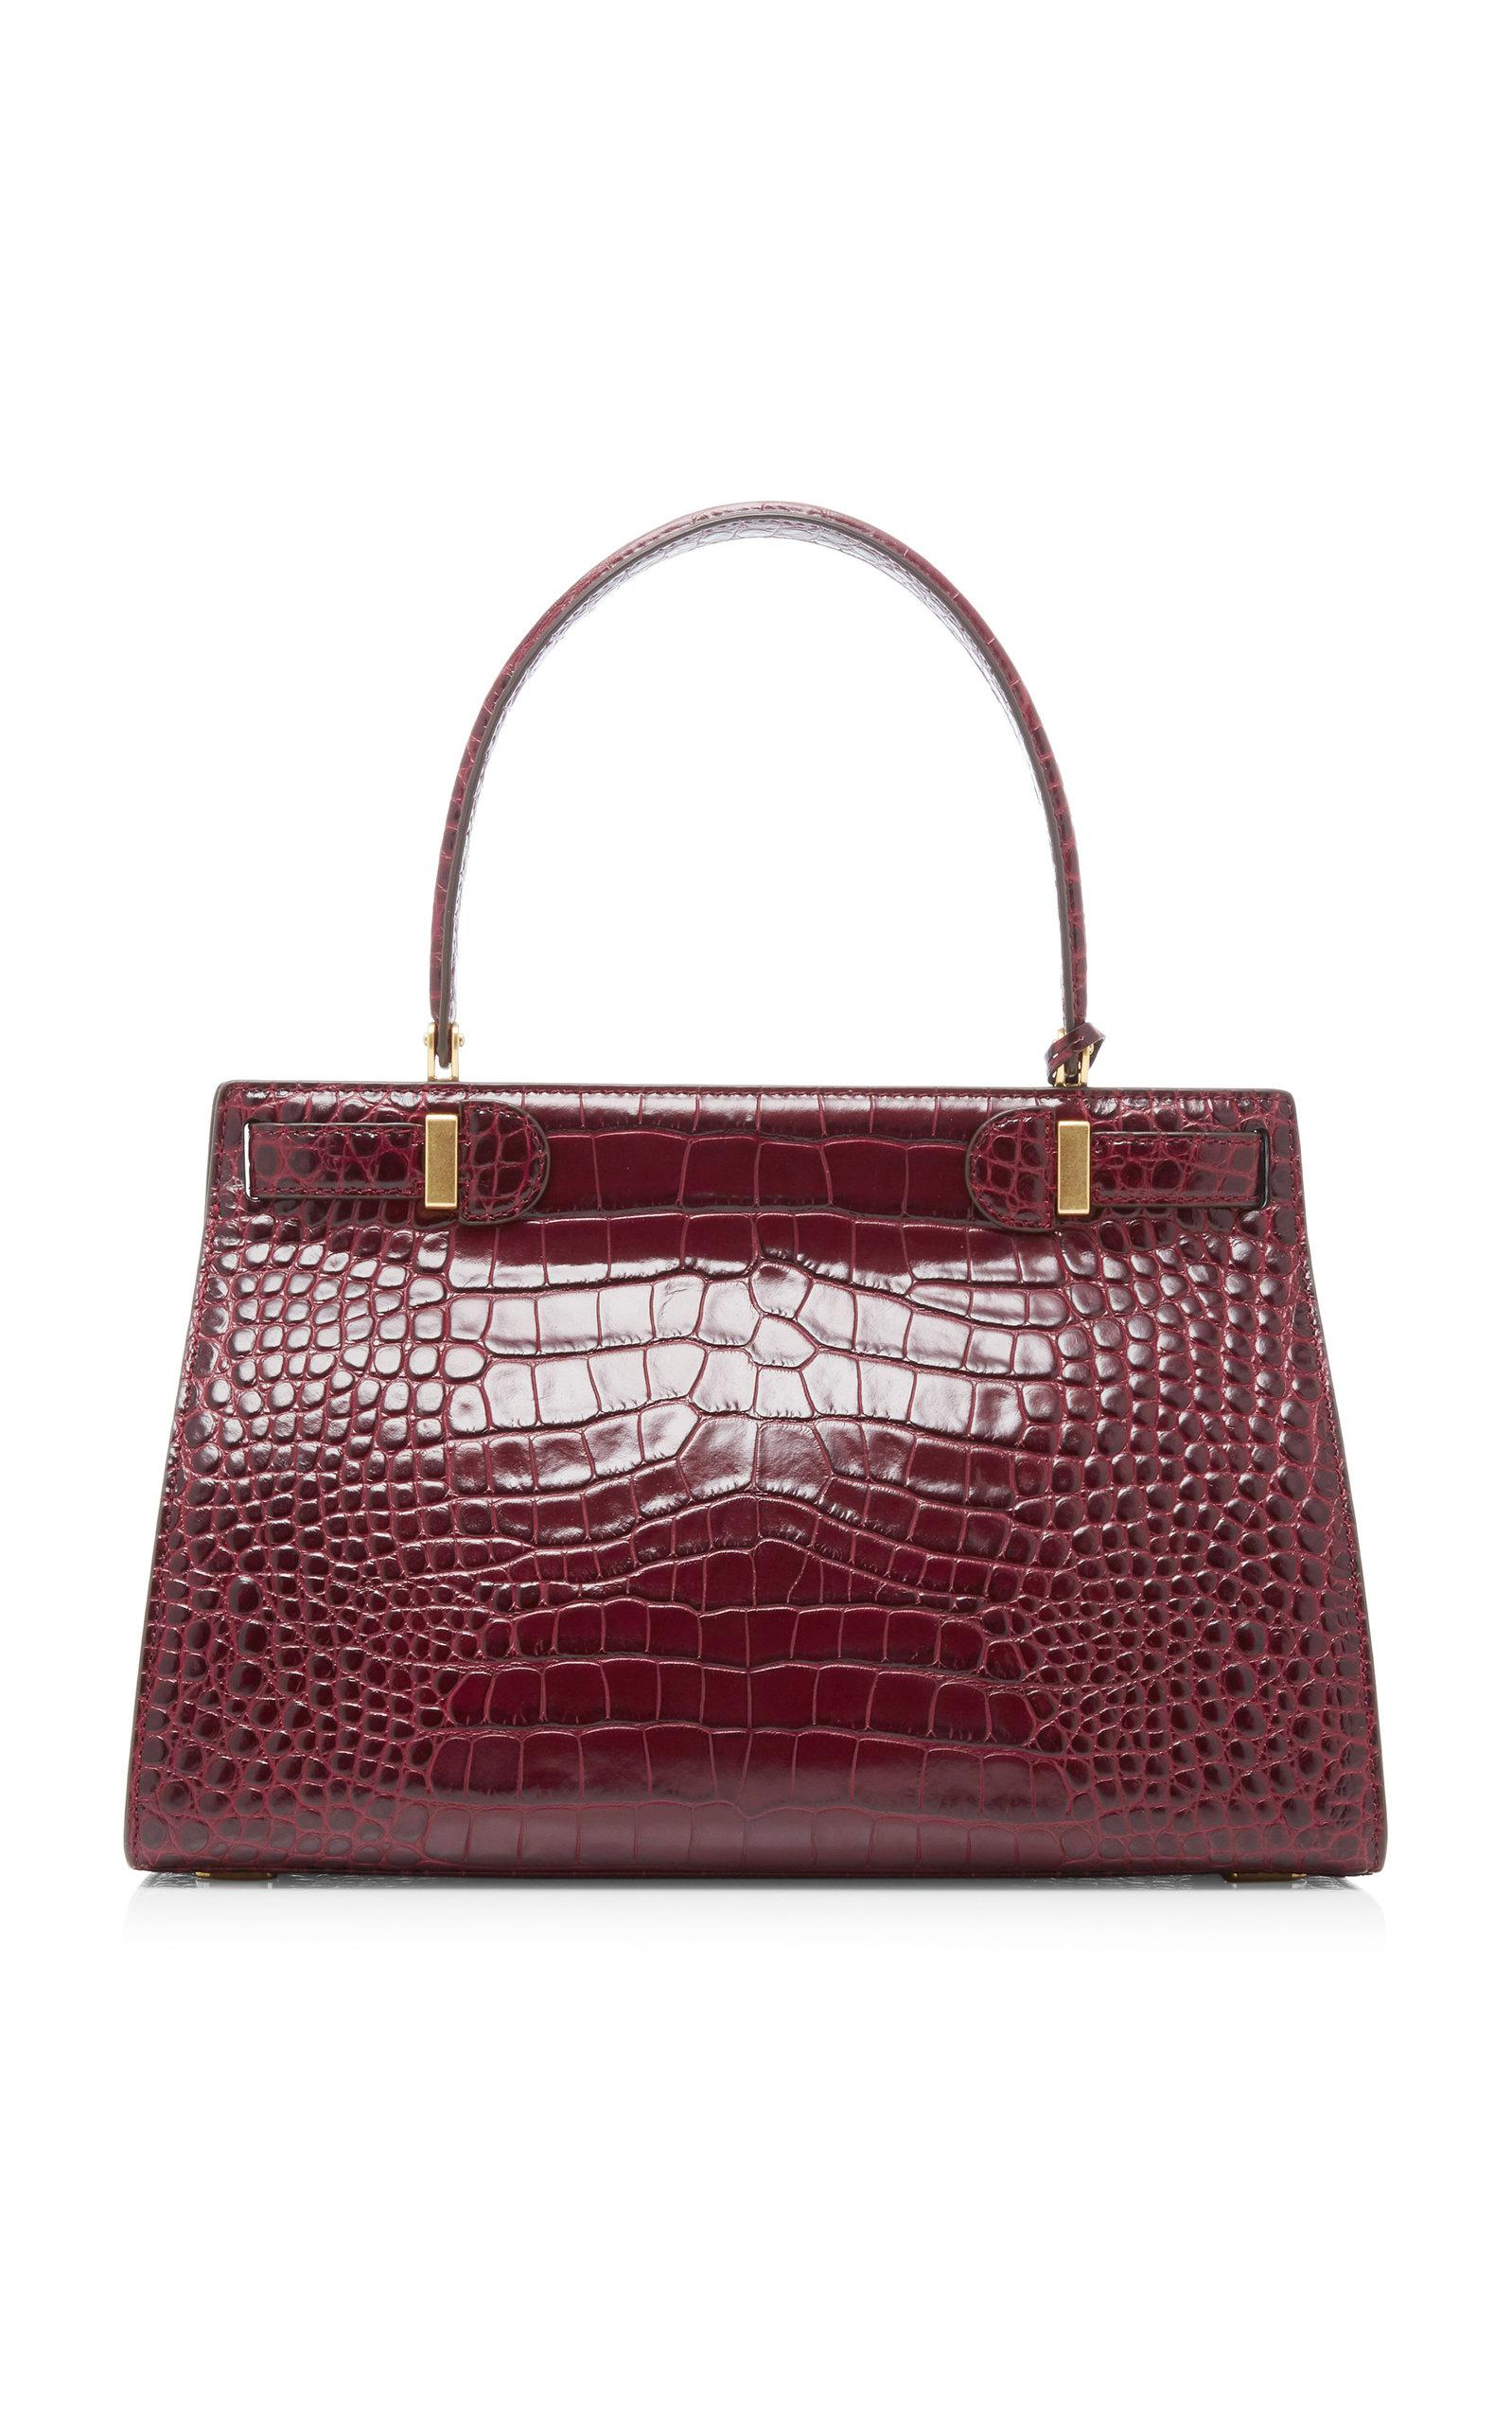 97785edad48e Lyst - Tory Burch Lee Radziwill Embossed Satchel in Red